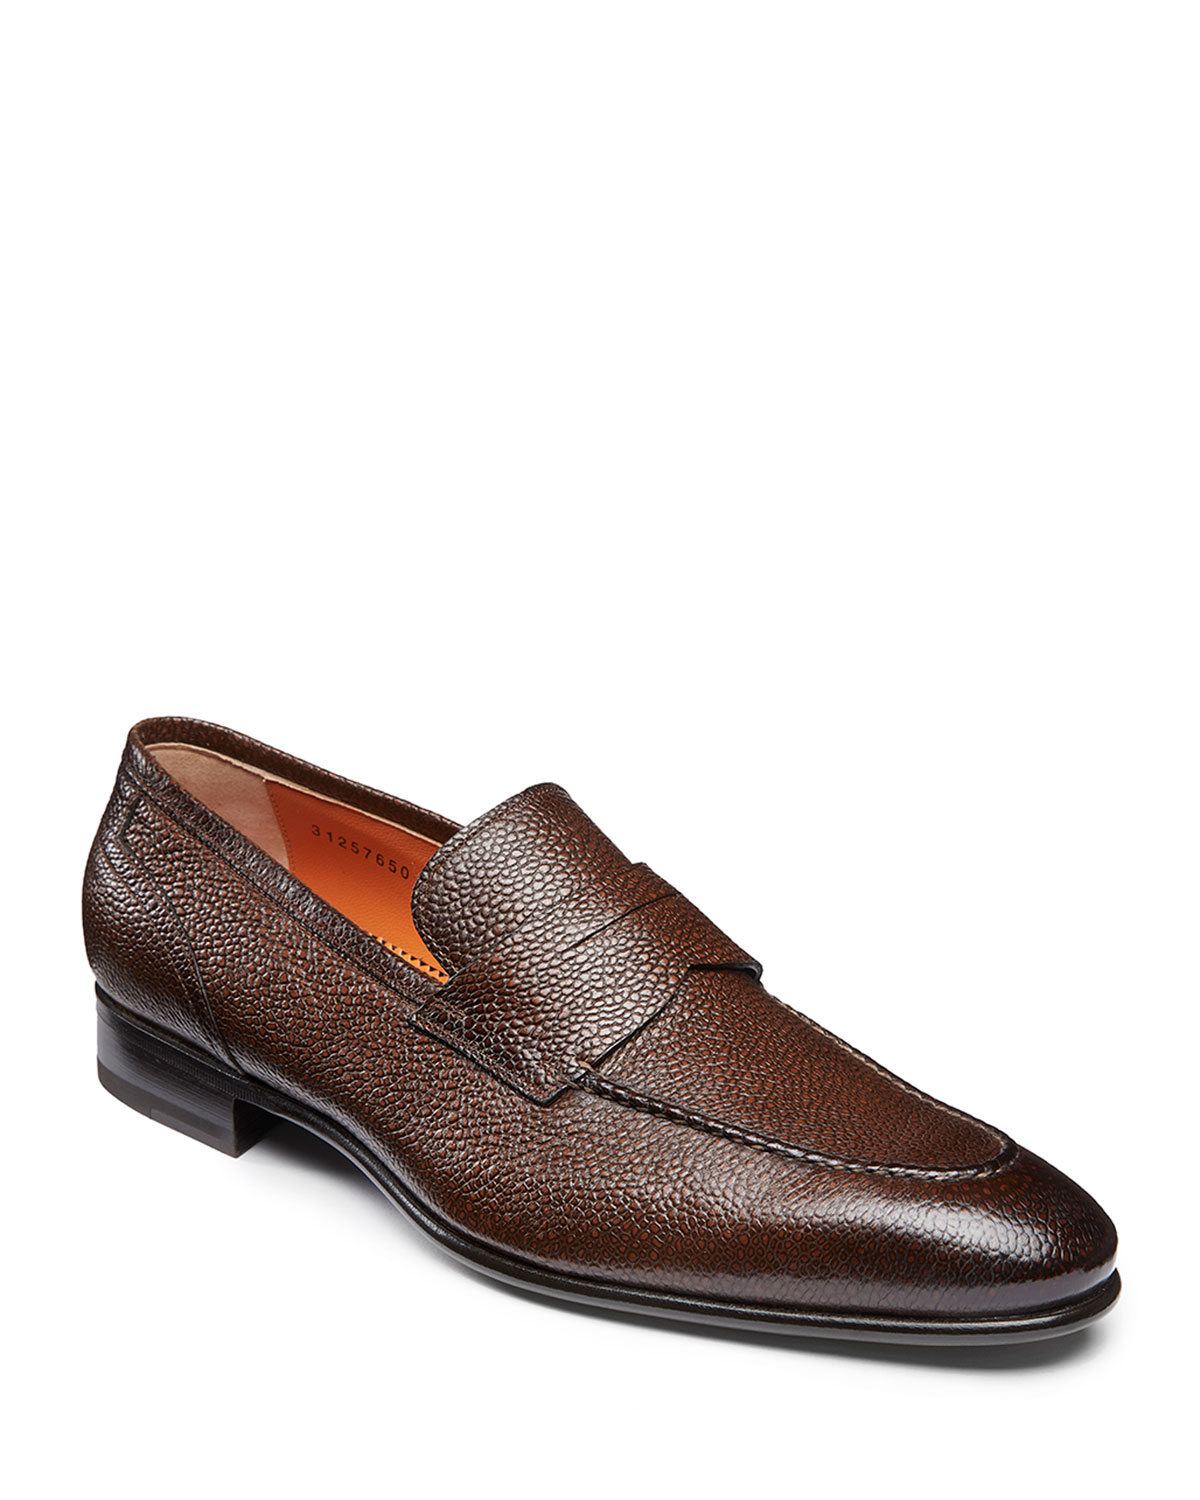 Santoni Felipe Brown Leather Penny Loafers